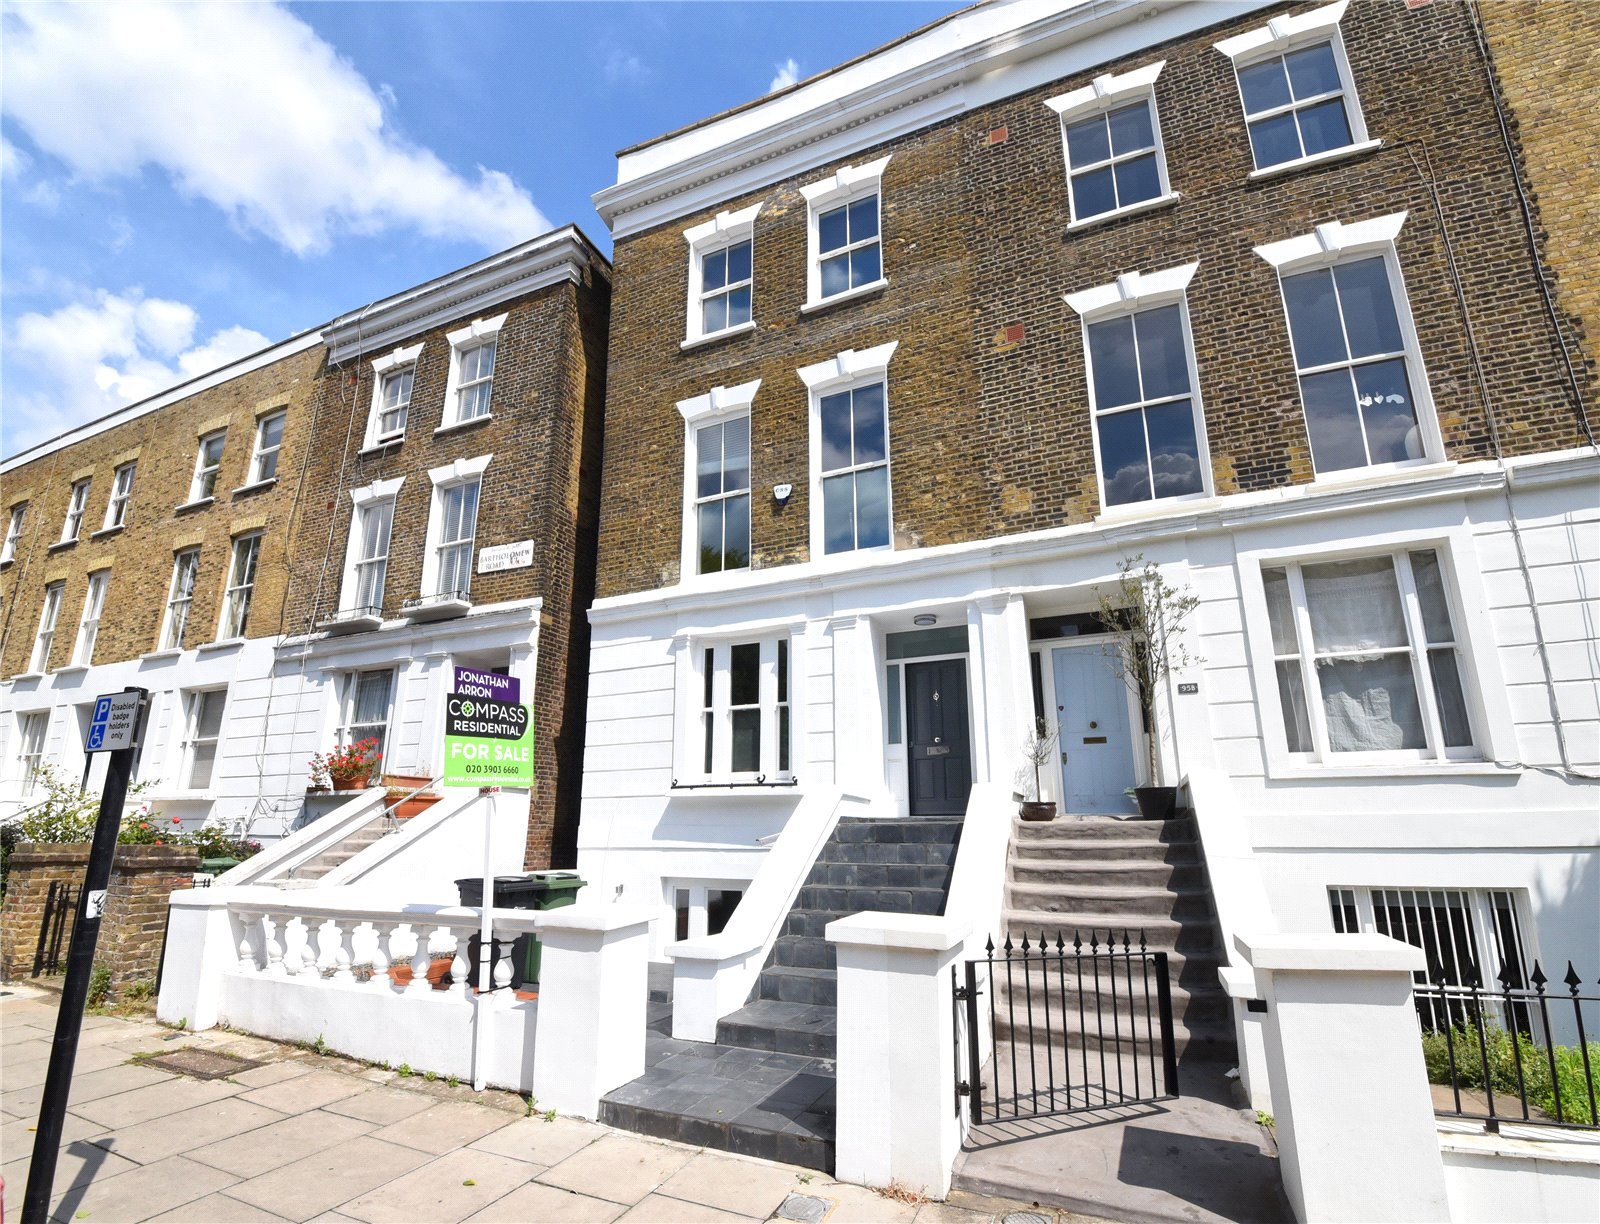 4 bed house for sale in Kentish Town, NW5 2AR  - Property Image 13